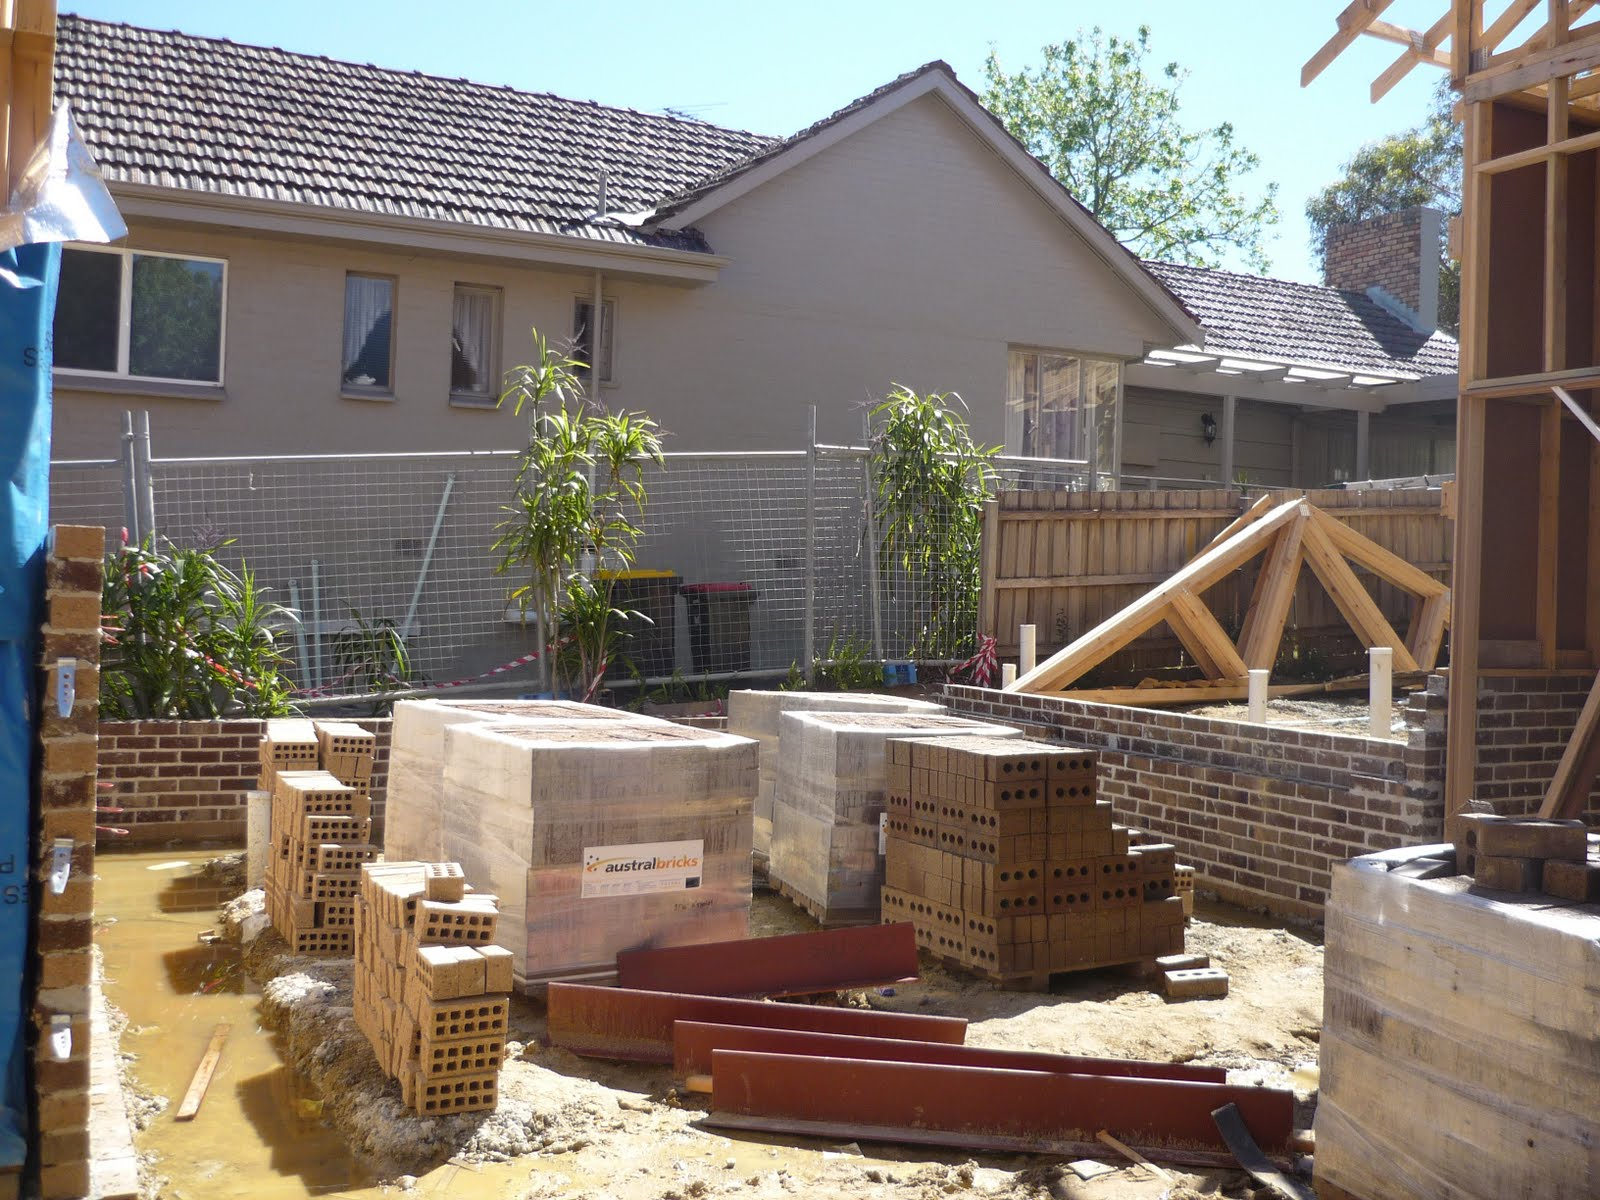 Building a house from scratch fence issue resolved for Cost to build a house from scratch